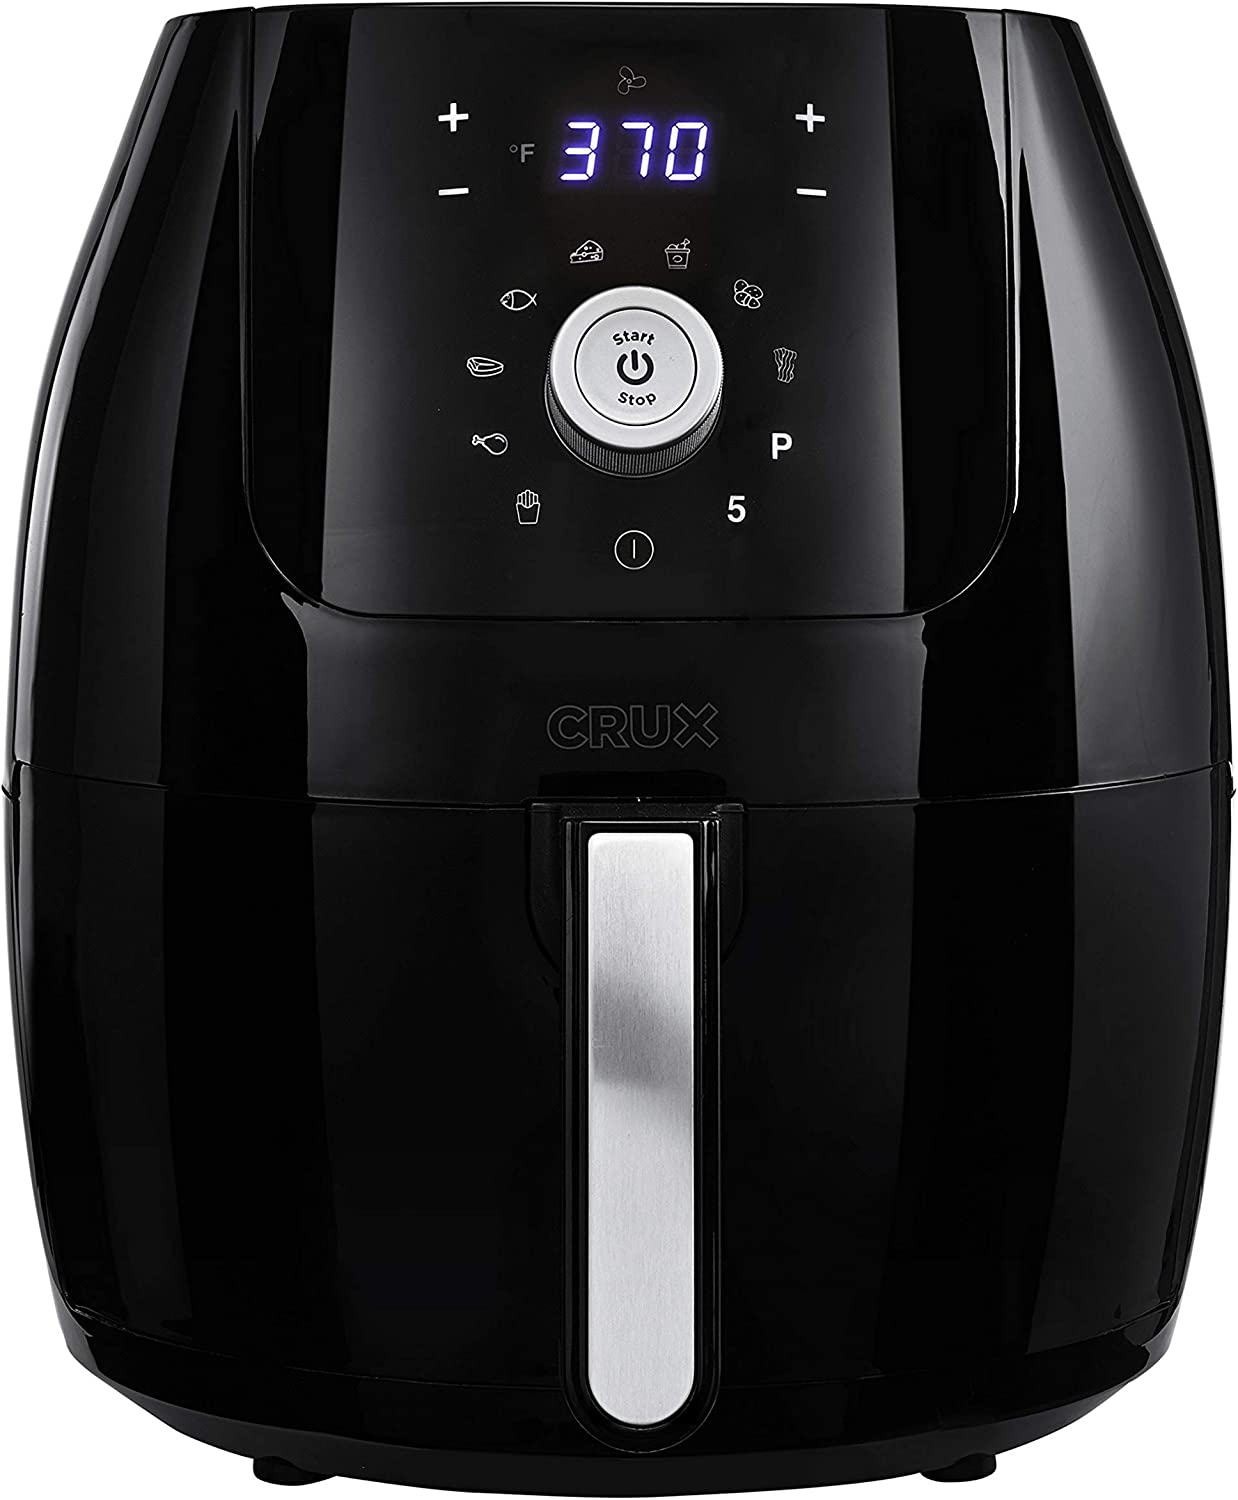 CRUX 6QT Digital Air Fryer, Healthy No-Oil Air Frying & Cooking, Hassle-Free Temperature and Timer Control, Easy to Clean with Removeable Dishwasher Safe Pan and Crisping Tray, Black (Renewed)